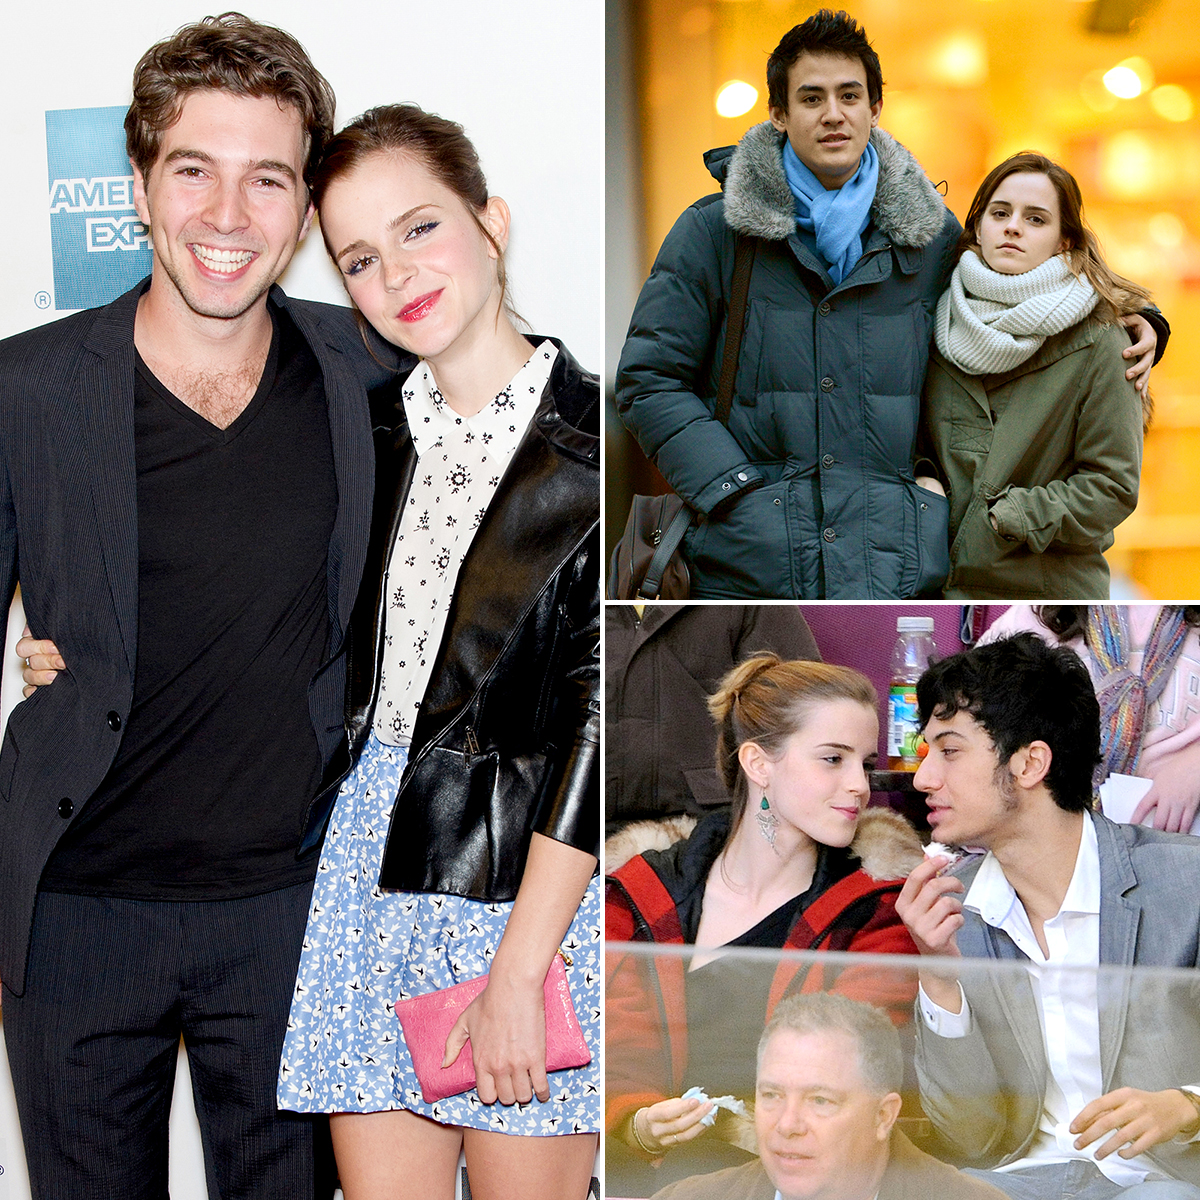 Emma Watson's Complete Dating History: Prince Harry, Chord Overstreet and More